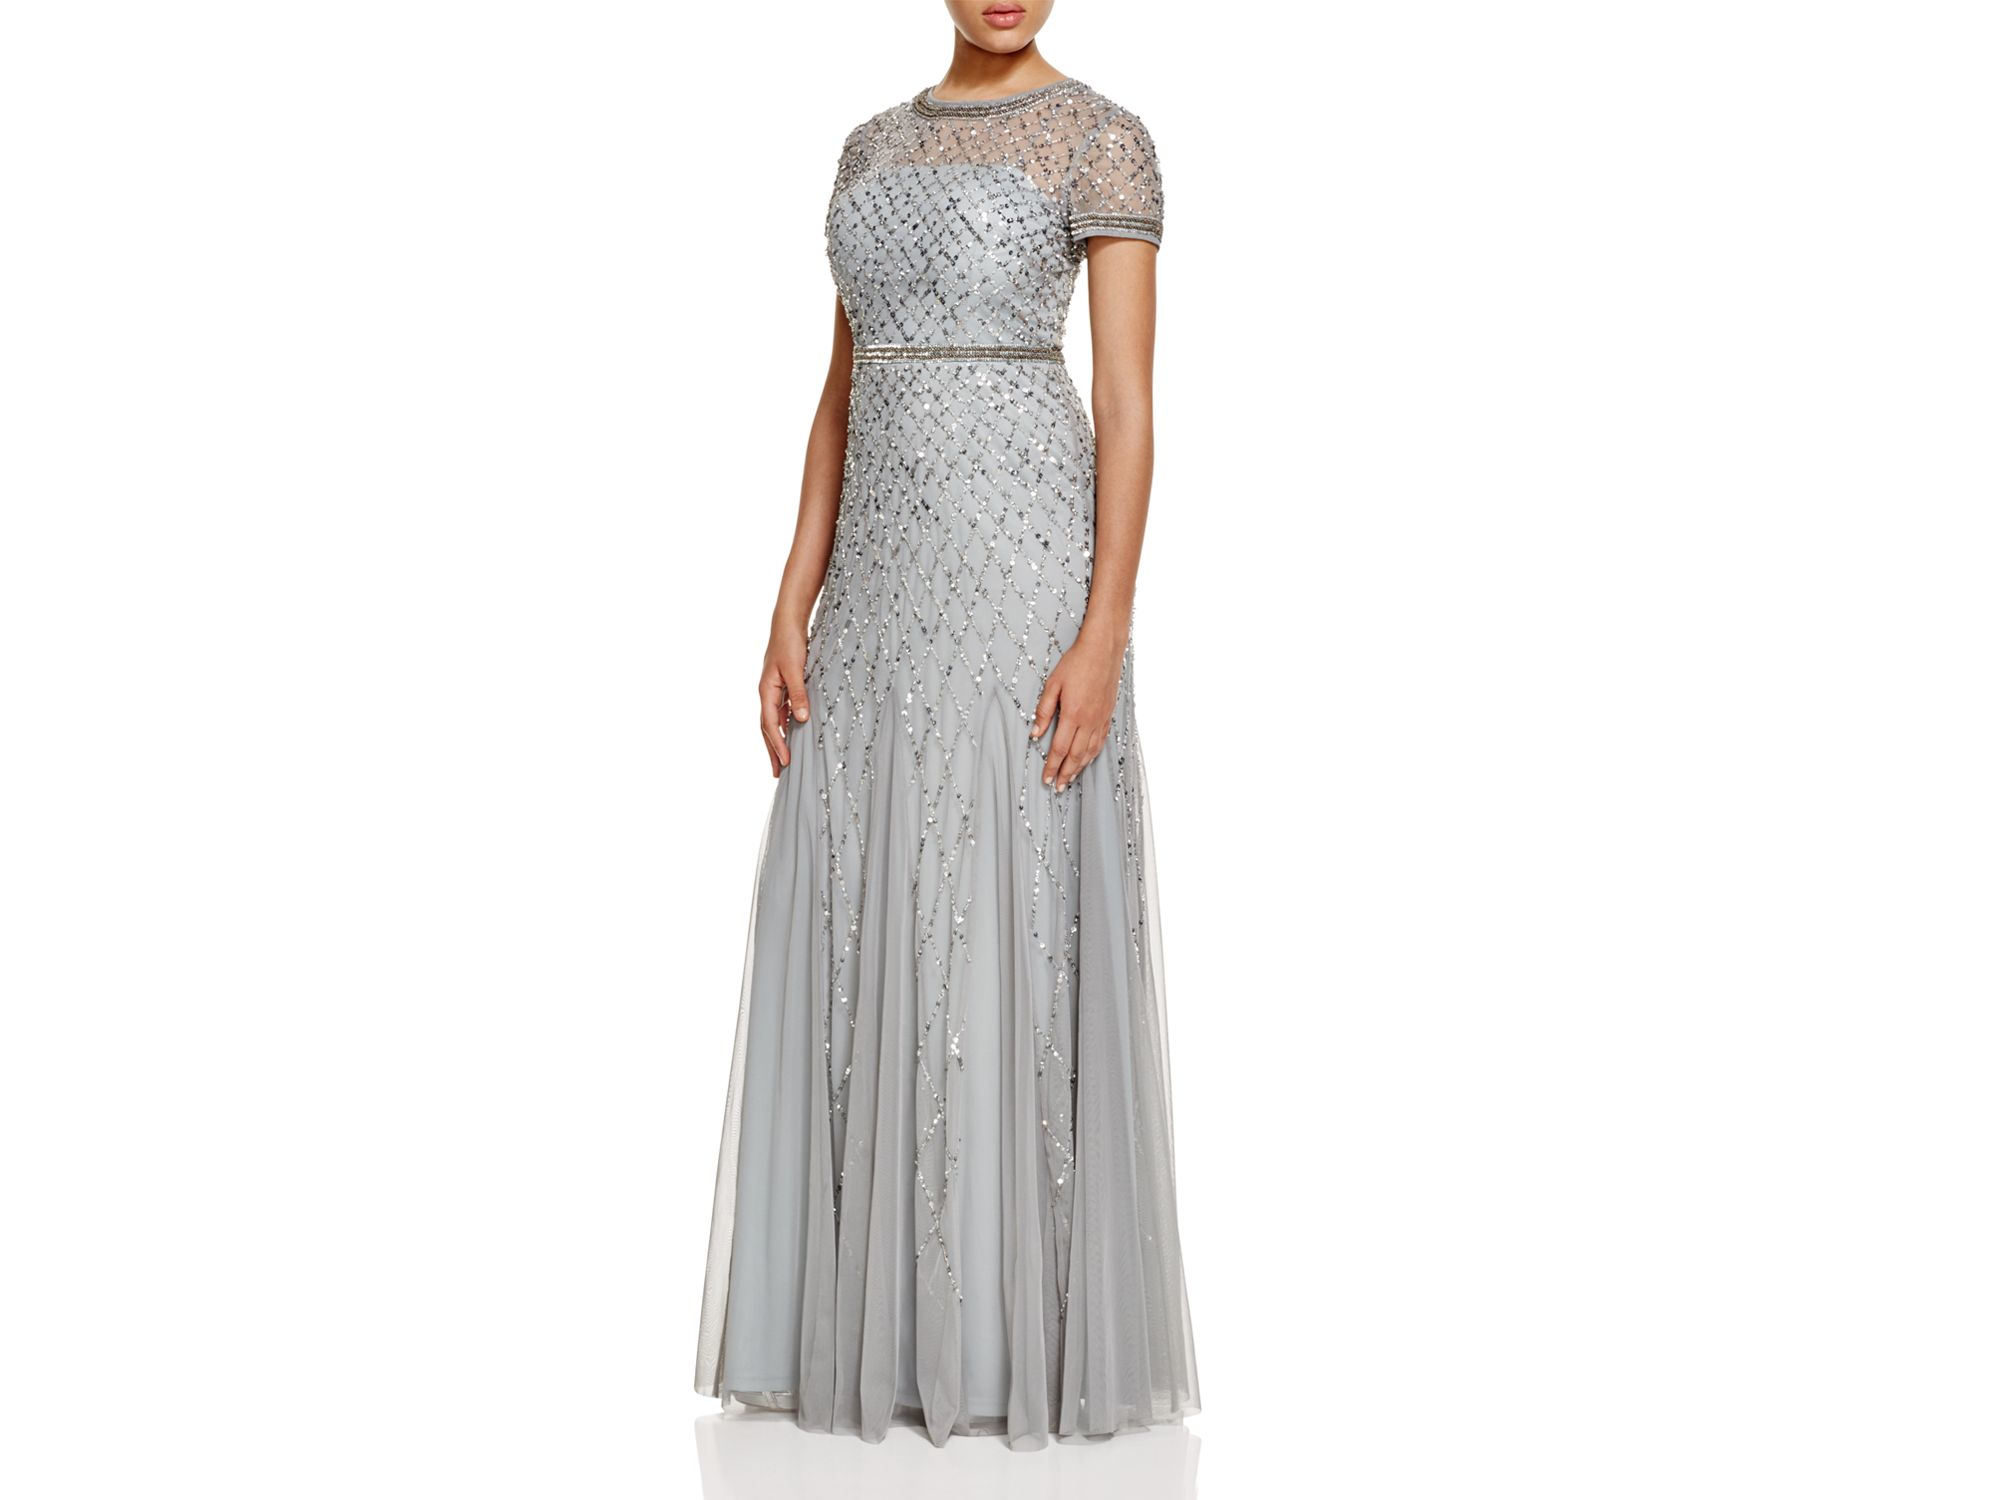 Lyst - Adrianna Papell Short Sleeve Beaded Gown in Blue